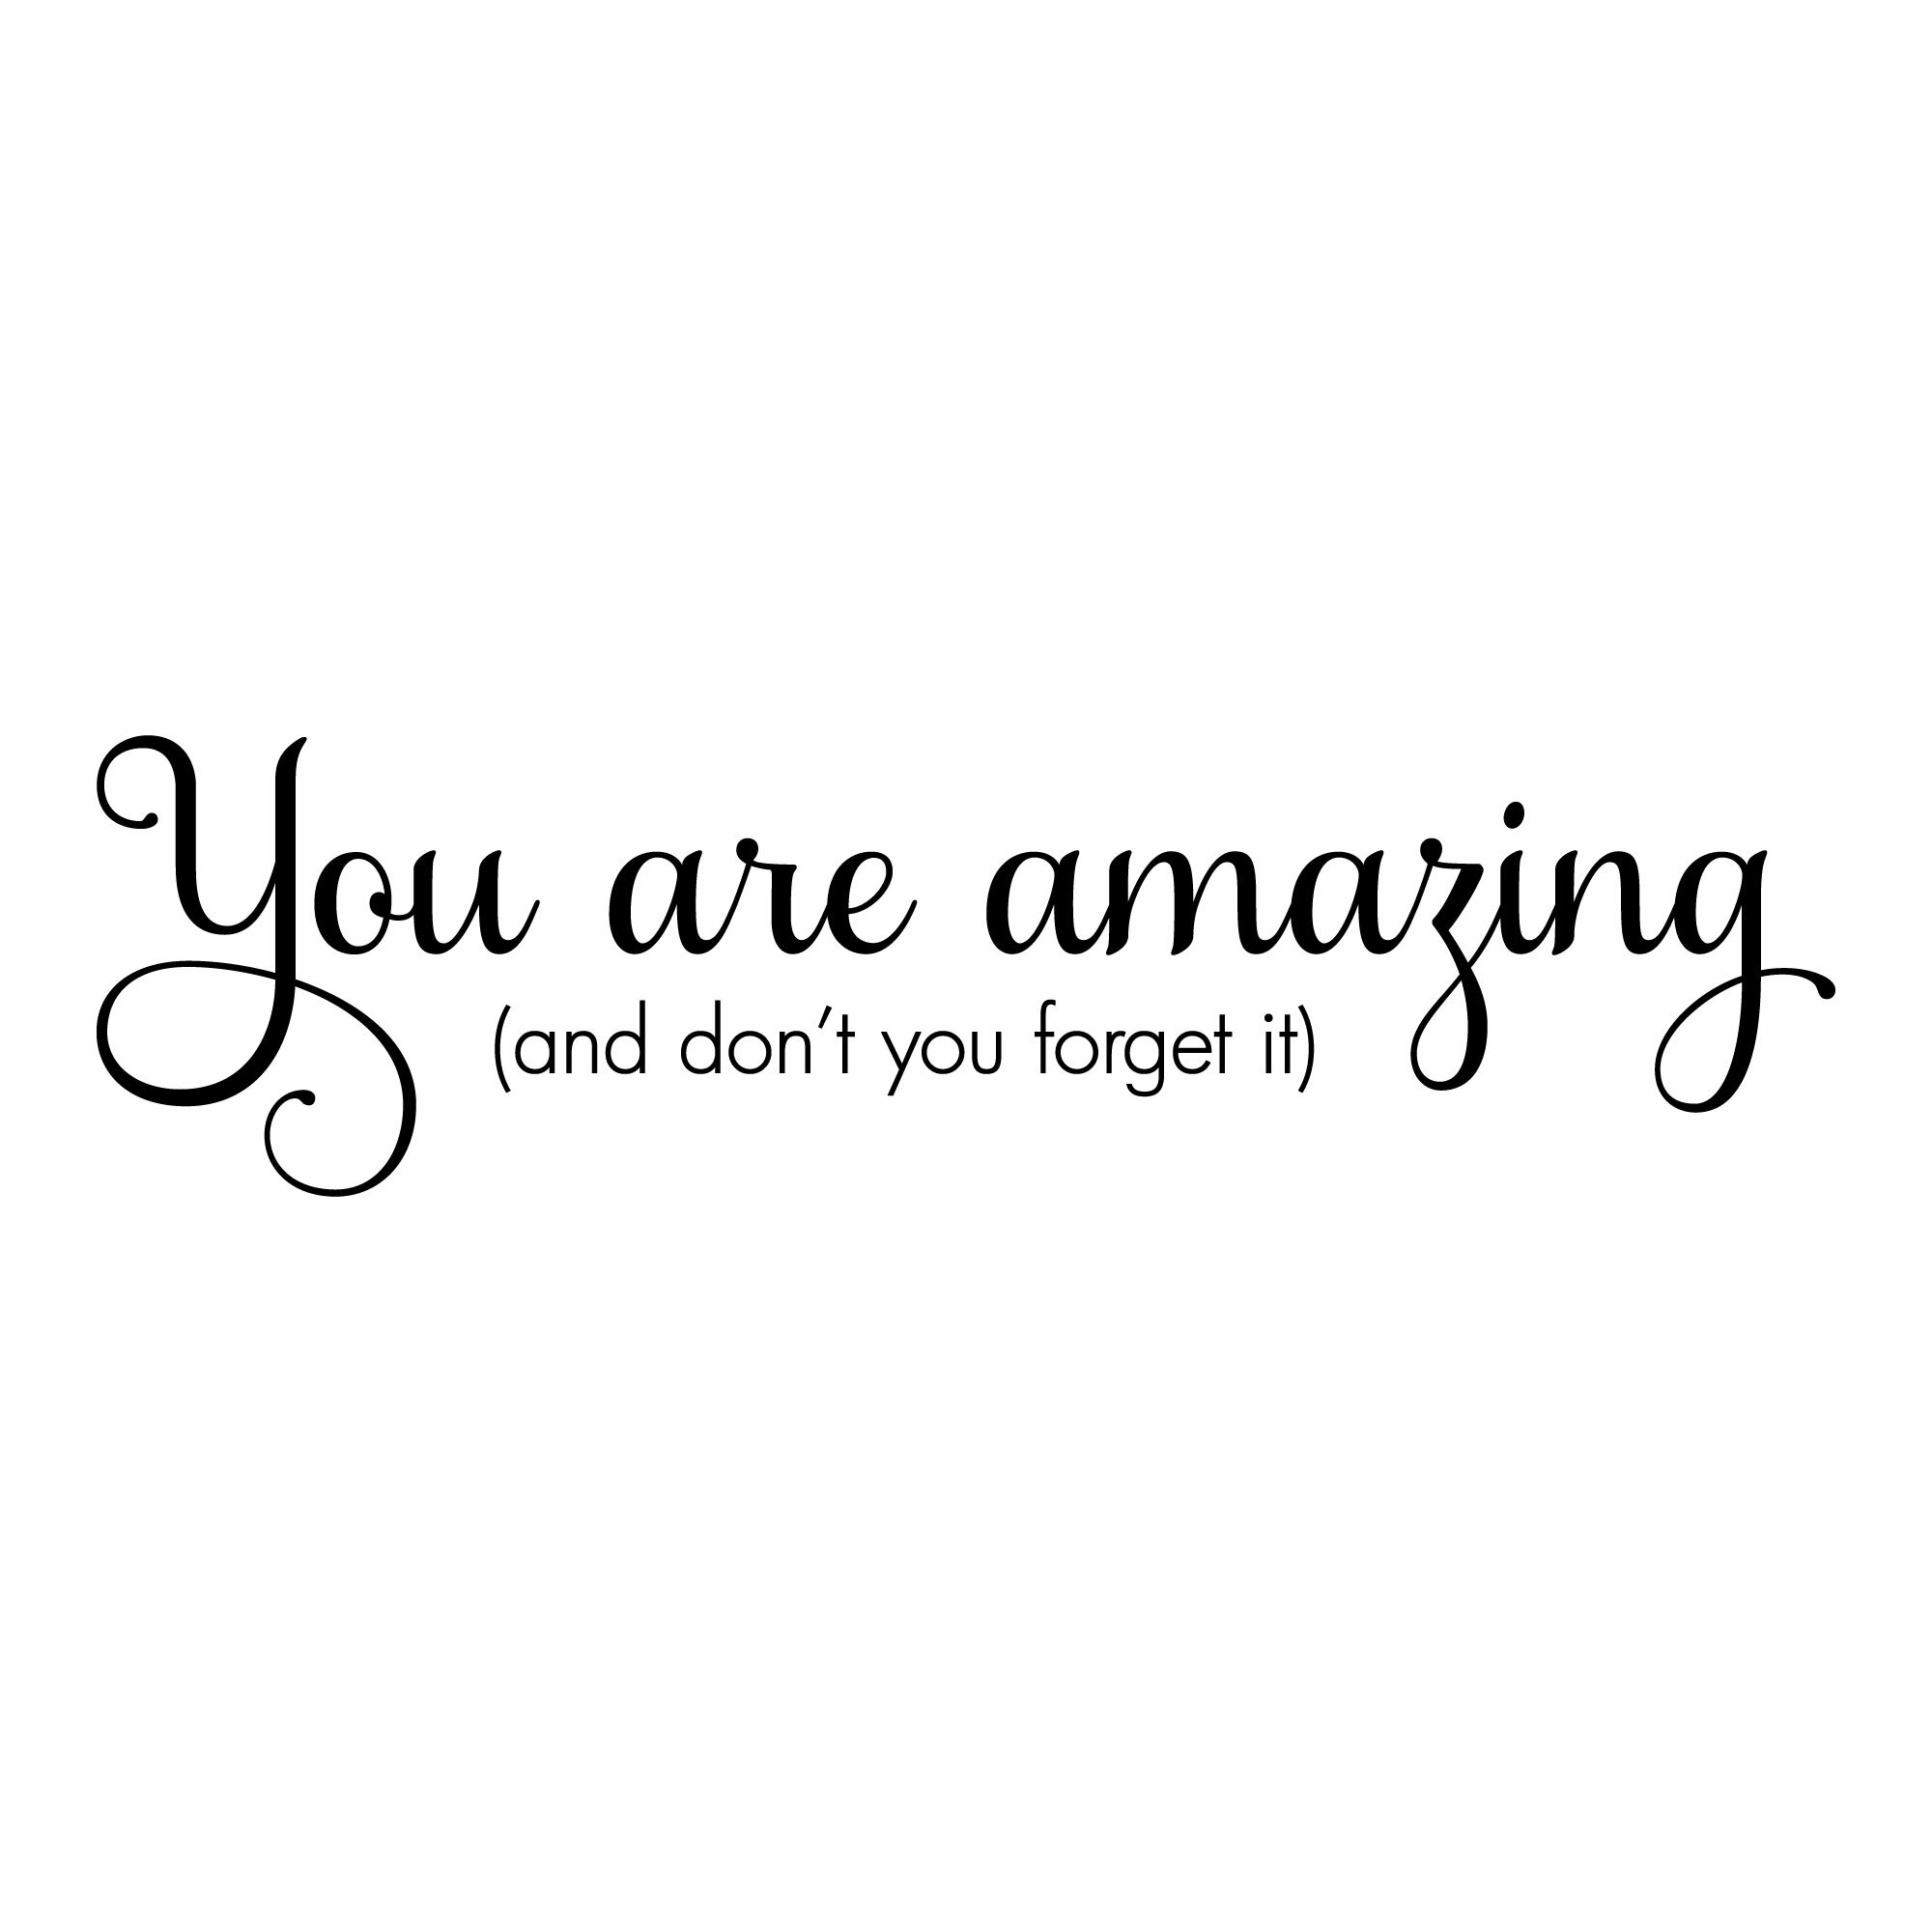 You Are Amazing Quotes Belvedere Designs LLC You Are Amazing Wall Quotes™ Decal & Reviews  You Are Amazing Quotes